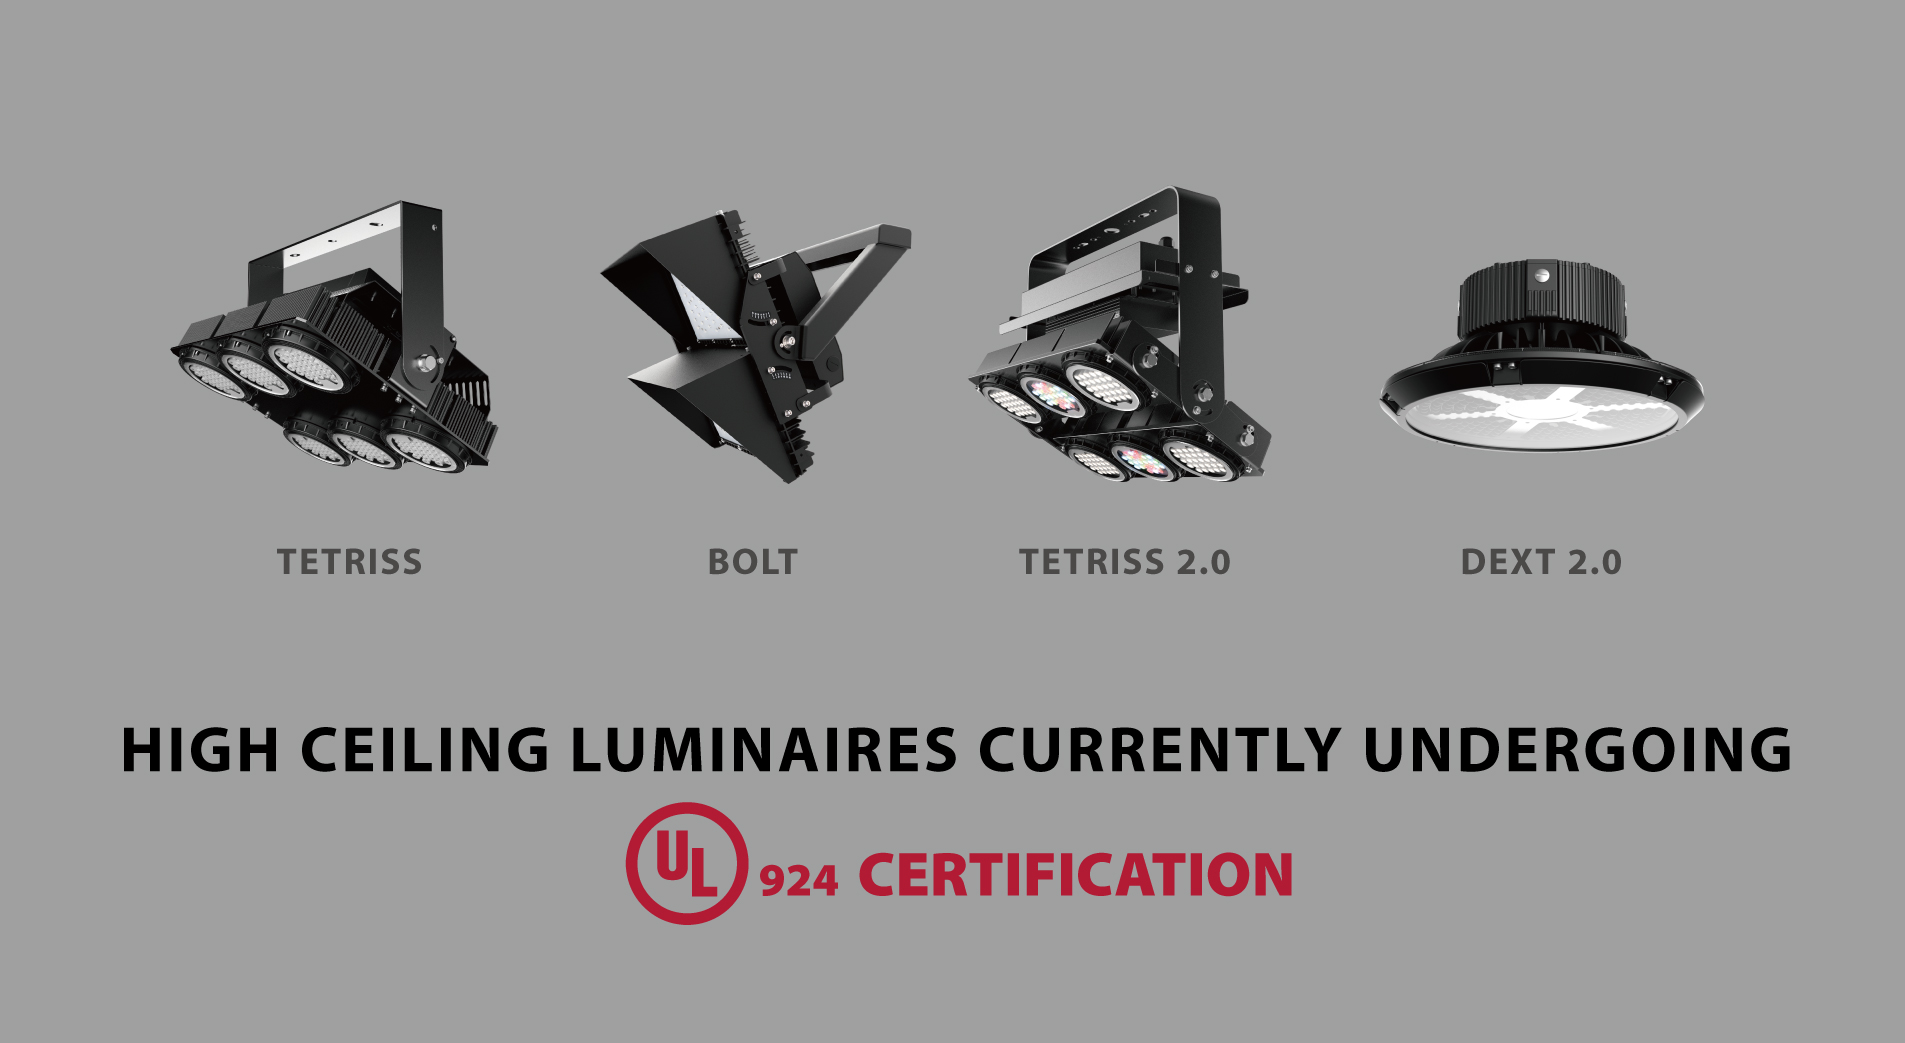 Meteor Lighting High Ceiling Luminaires are now UL 924 Certified